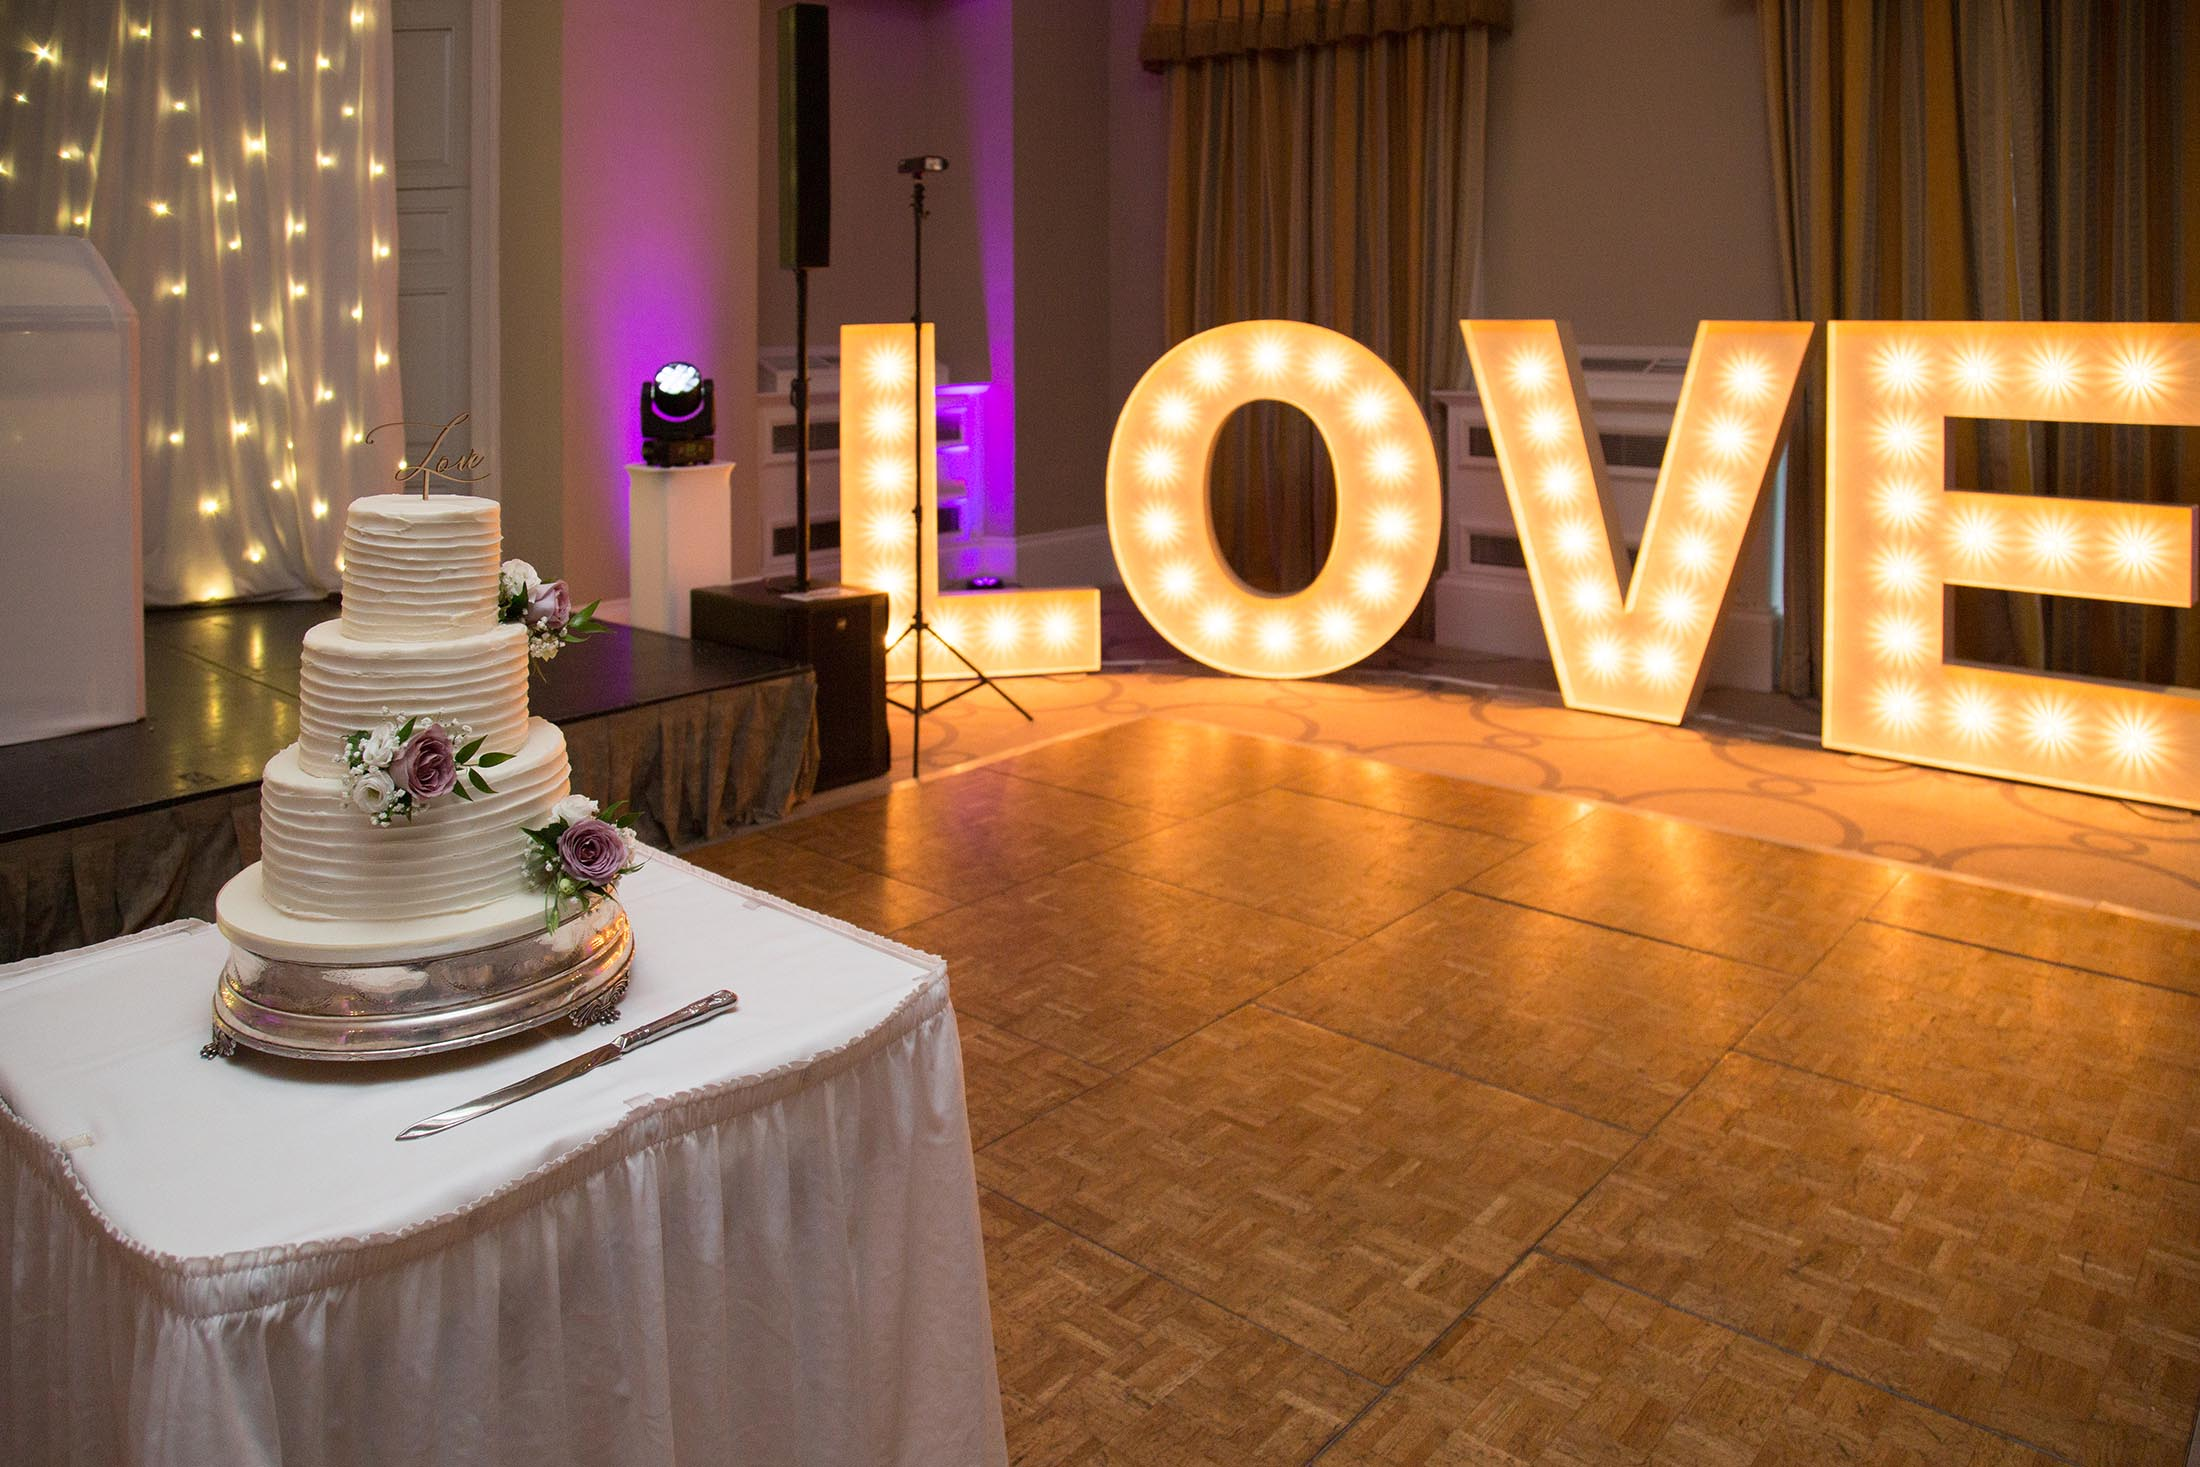 The Wedding cake and love letters at Rudding Park